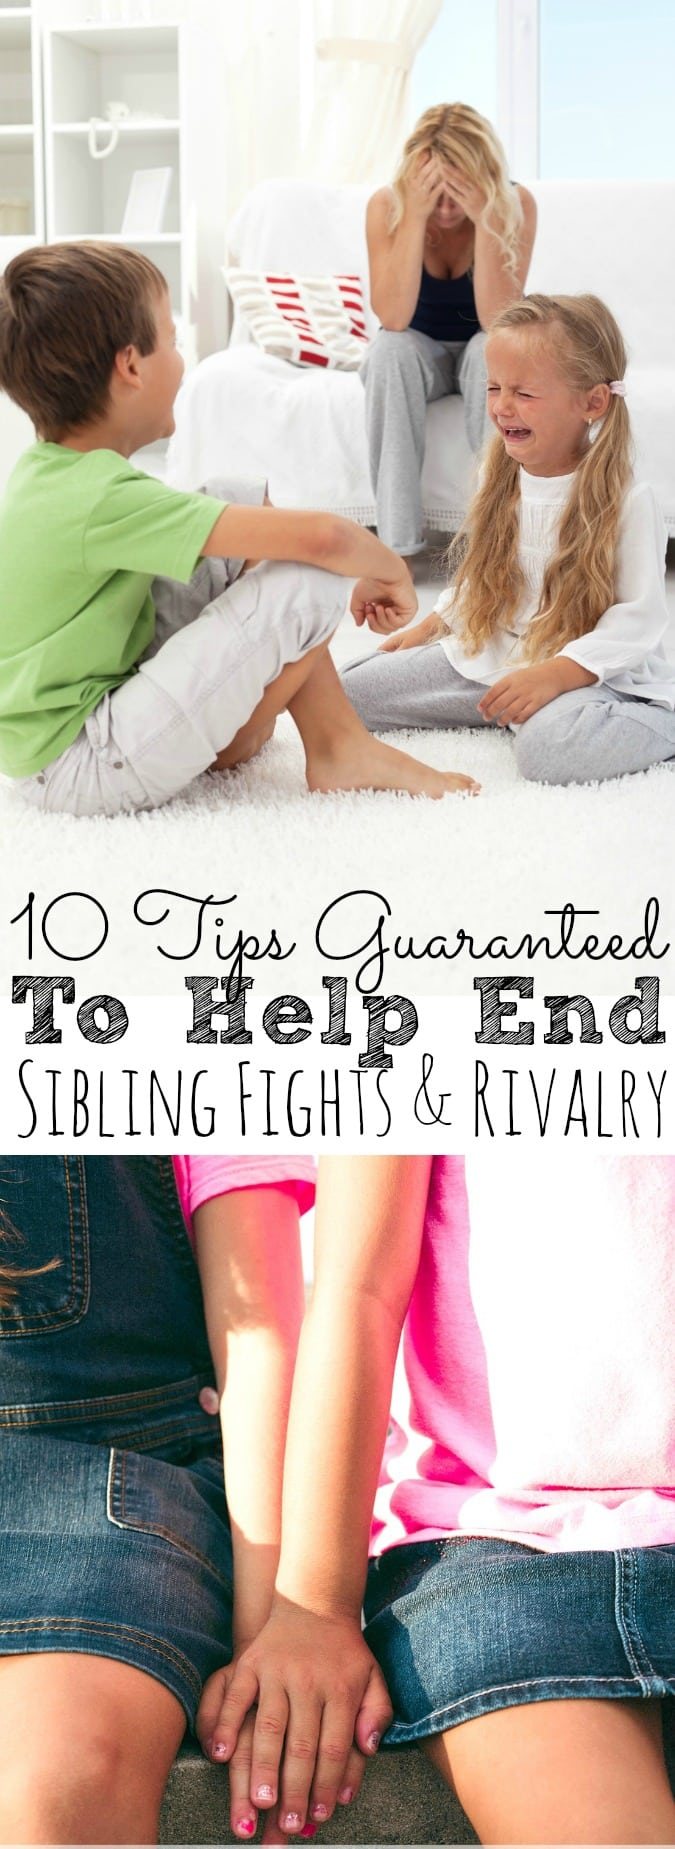 10 Tips Guaranteed To Help End Sibling Fighting - simplytodaylife.com